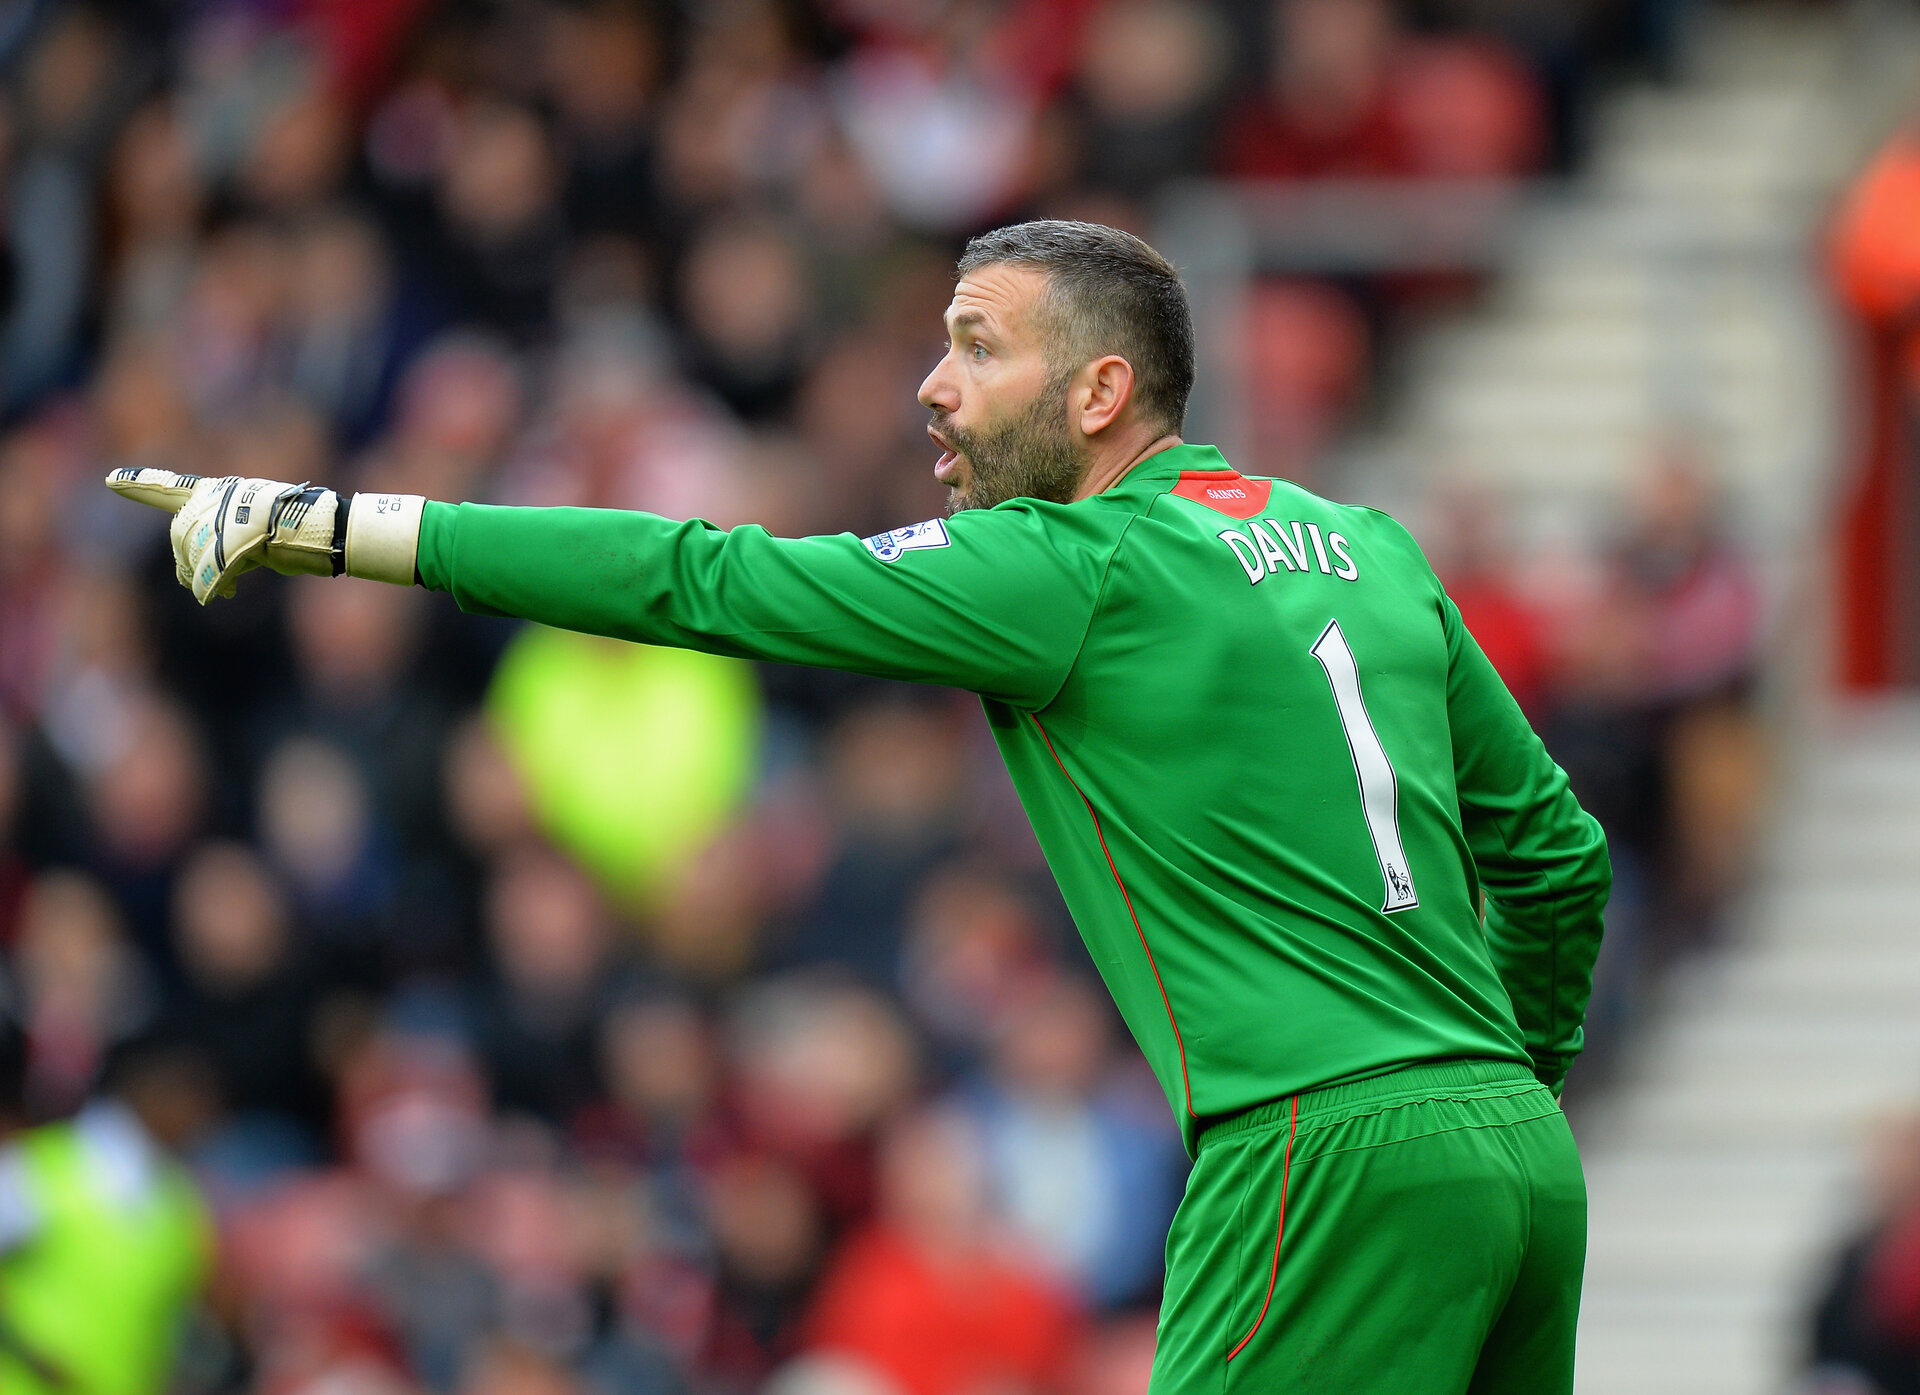 SOUTHAMPTON, ENGLAND - MARCH 21: Kelvin Davis of Southampton during the Barclays Premier League match between Southampton and Burnley at St Mary's Stadium on March 21, 2015 in Southampton, England.  (Photo by Tony Marshall/Getty Images)